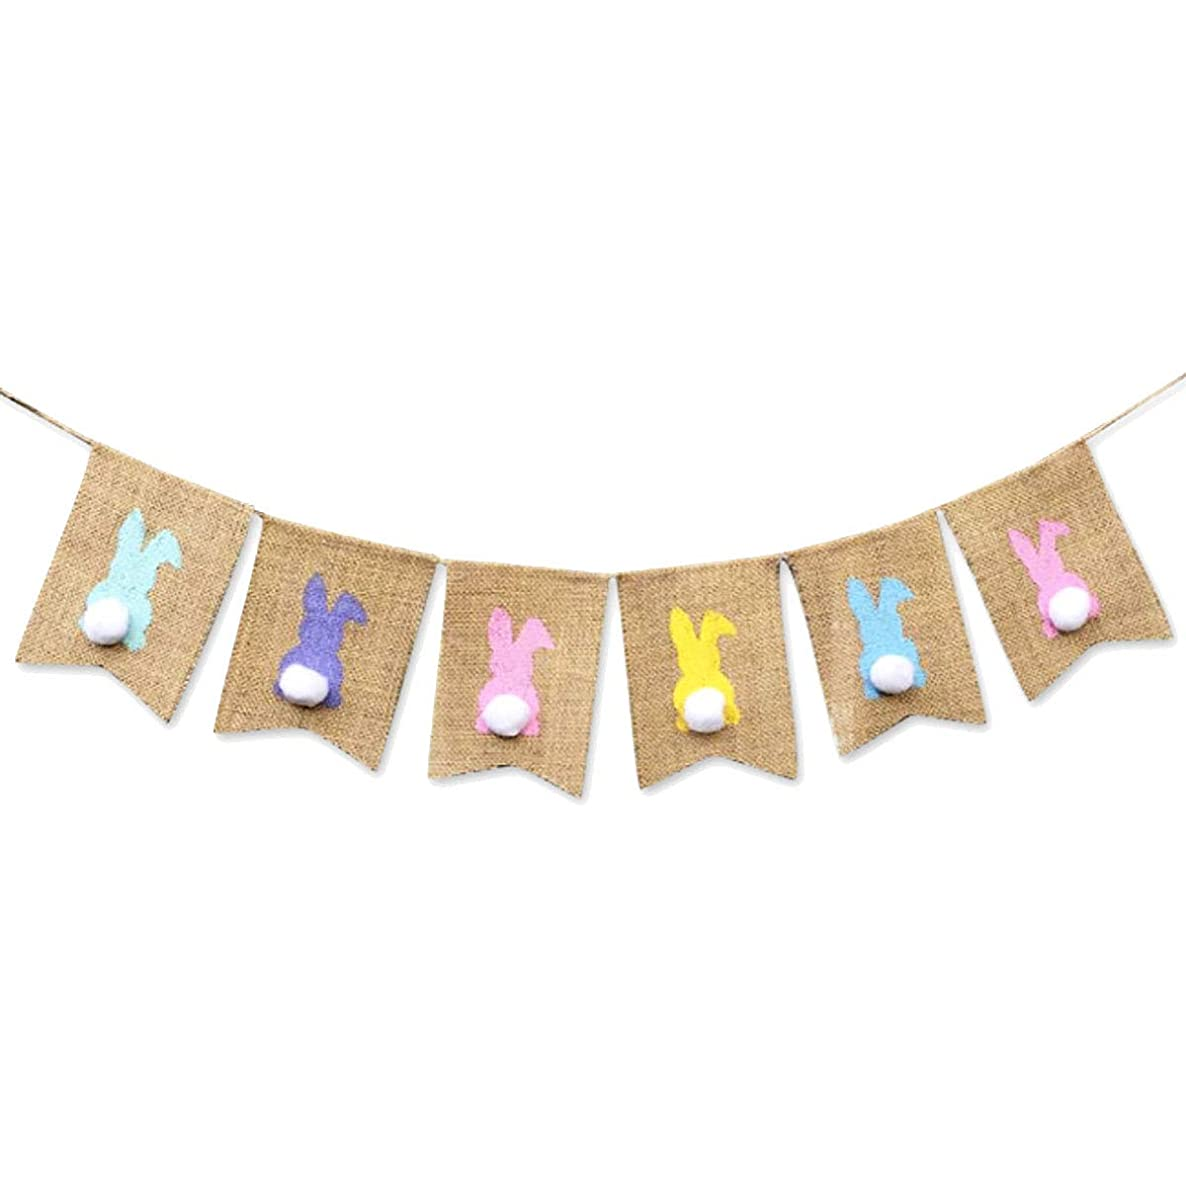 IDOXE Easter Burlap Banners Colorful Bunny Pattern Bunting Garland Easter Decorations Home Party Decor Favors (Bunny)